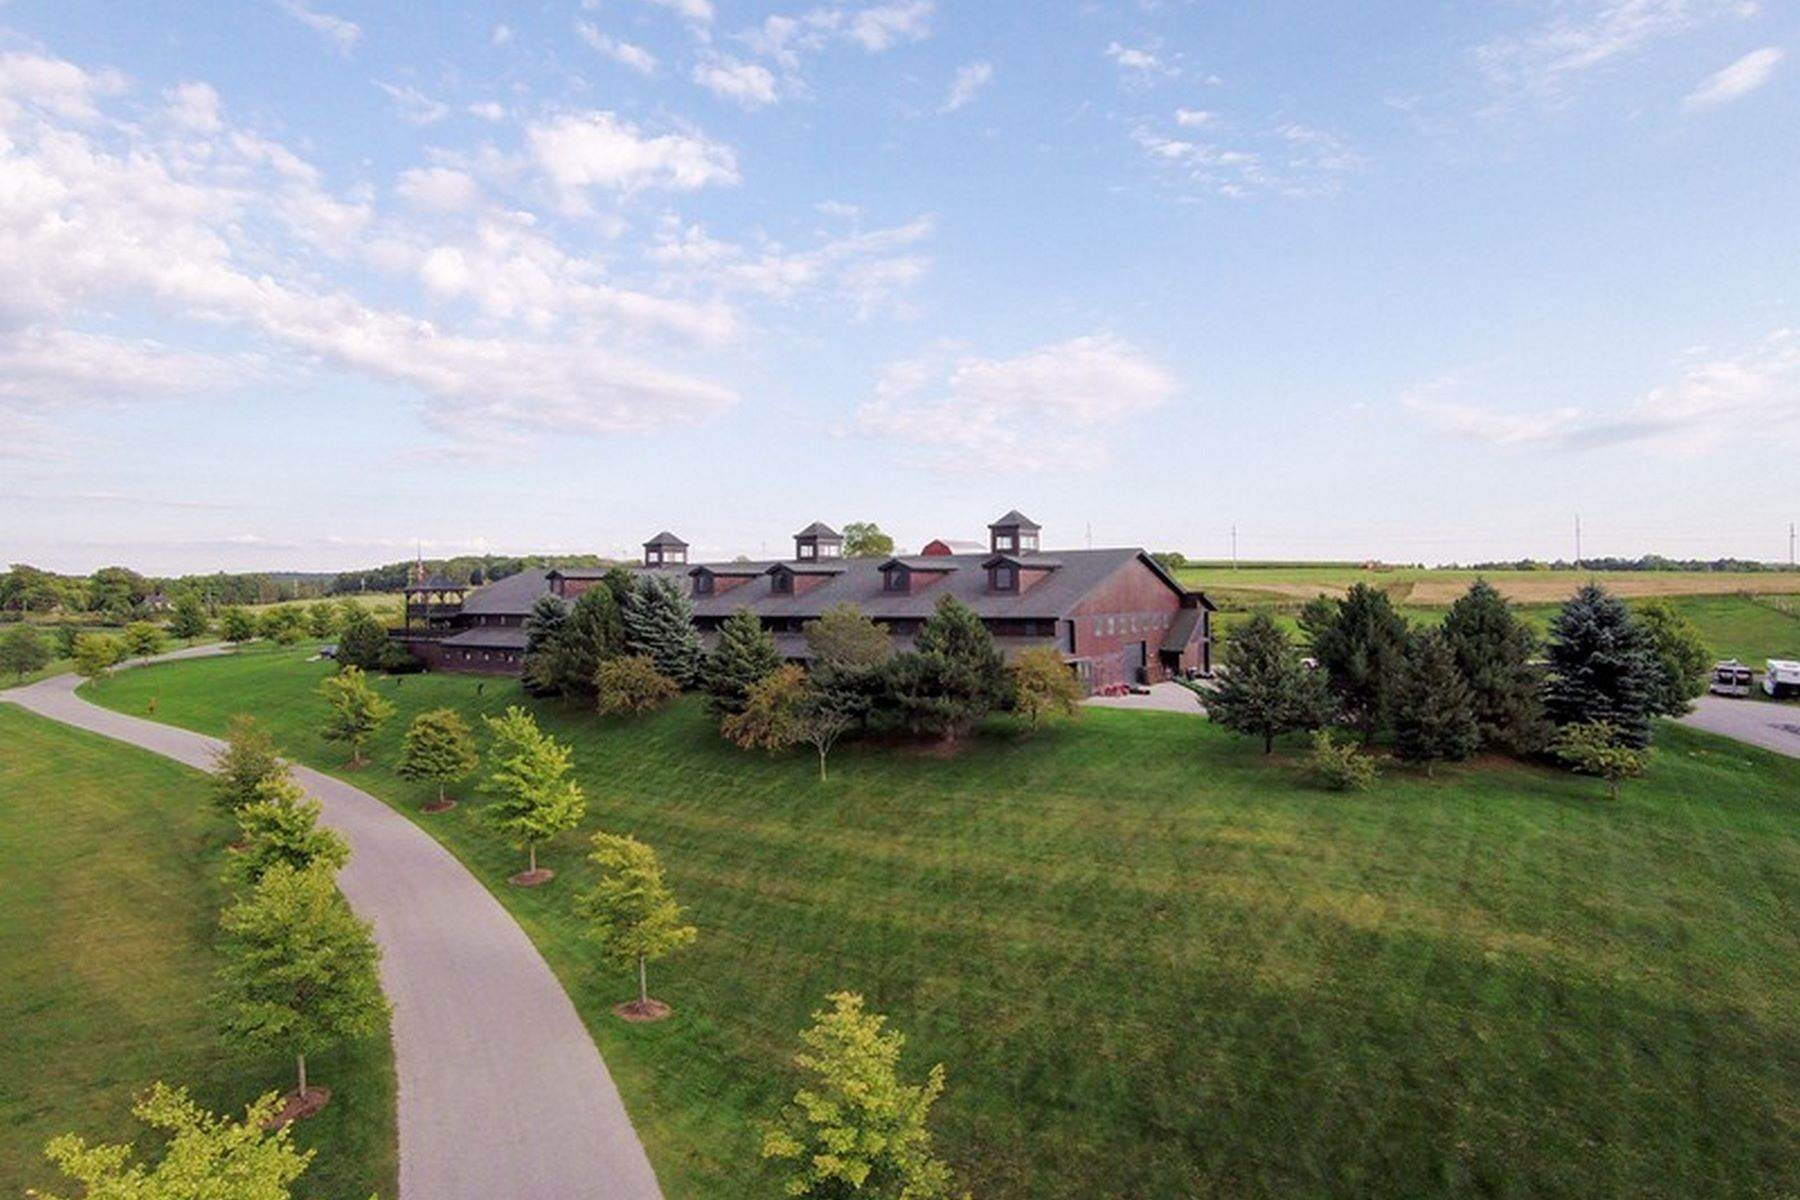 Property for Sale at Equestrian Masterpiece 5251 Charlevoix Road Petoskey, Michigan 49770 United States